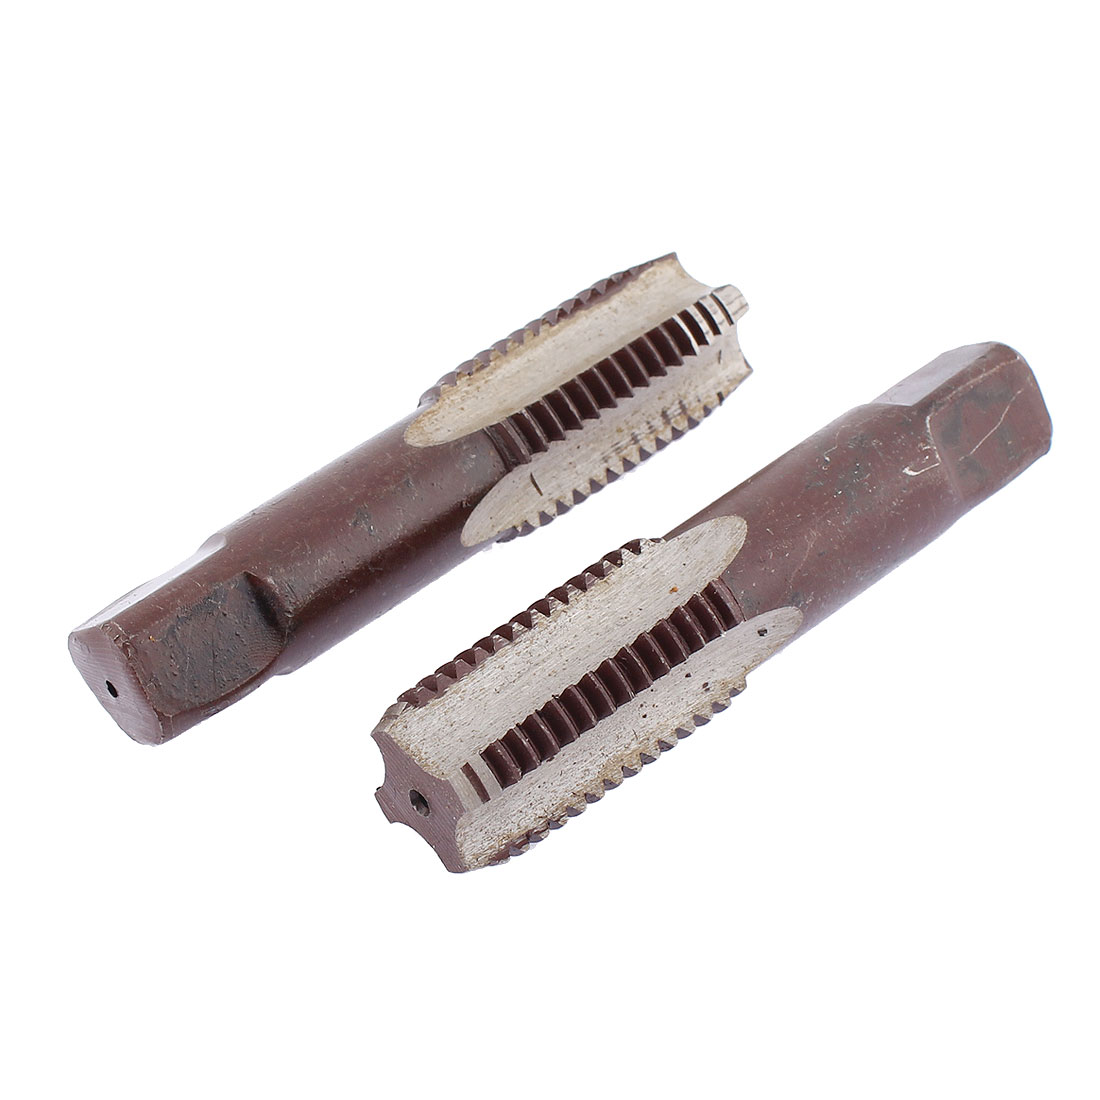 M24 x 2 Metric Brown Straight Threaded 4 Flutes Hand Taper Taps Threading Tools 2 Pcs